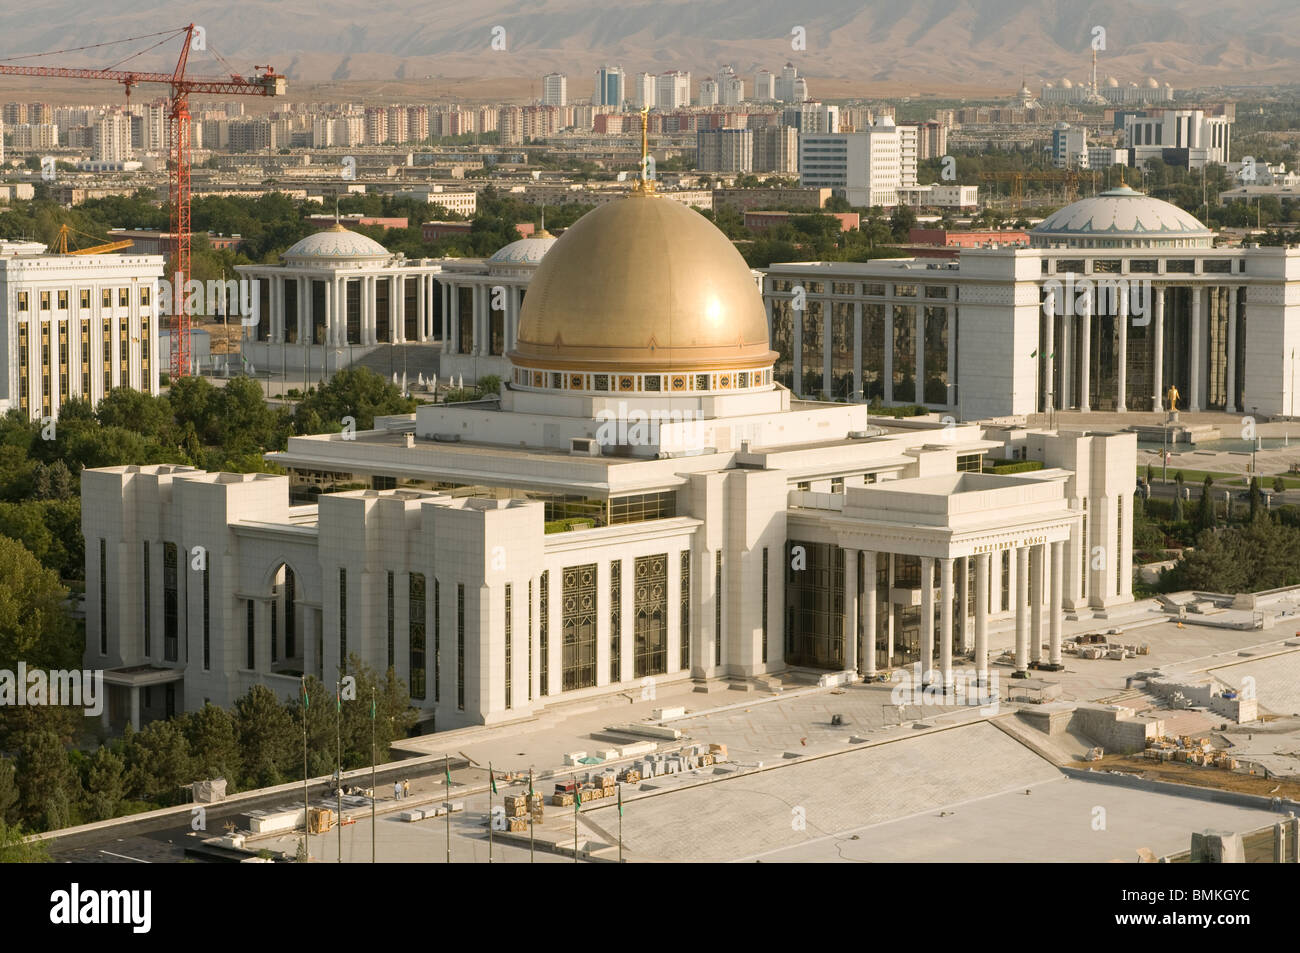 Imposing palace with cupola, Ashgabad, Turkmenistan - Stock Image